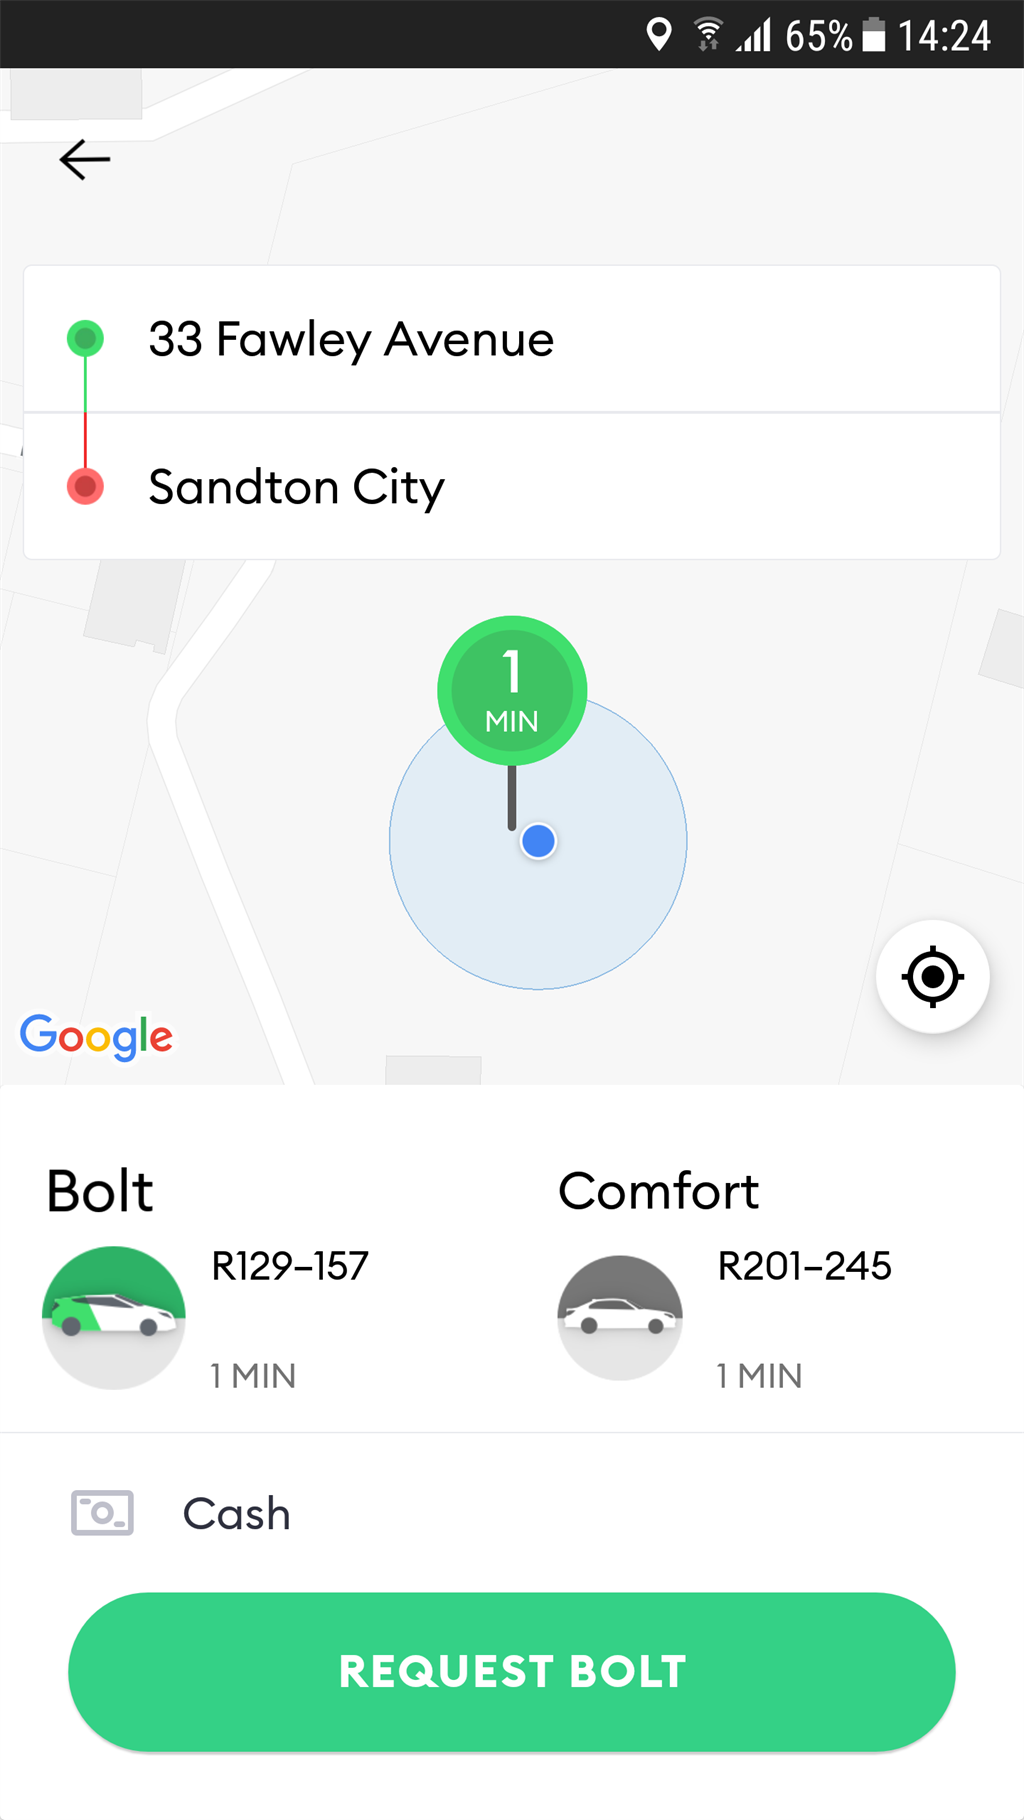 Yookoo Rider, Uber, InDriver, Taxify, Bolt